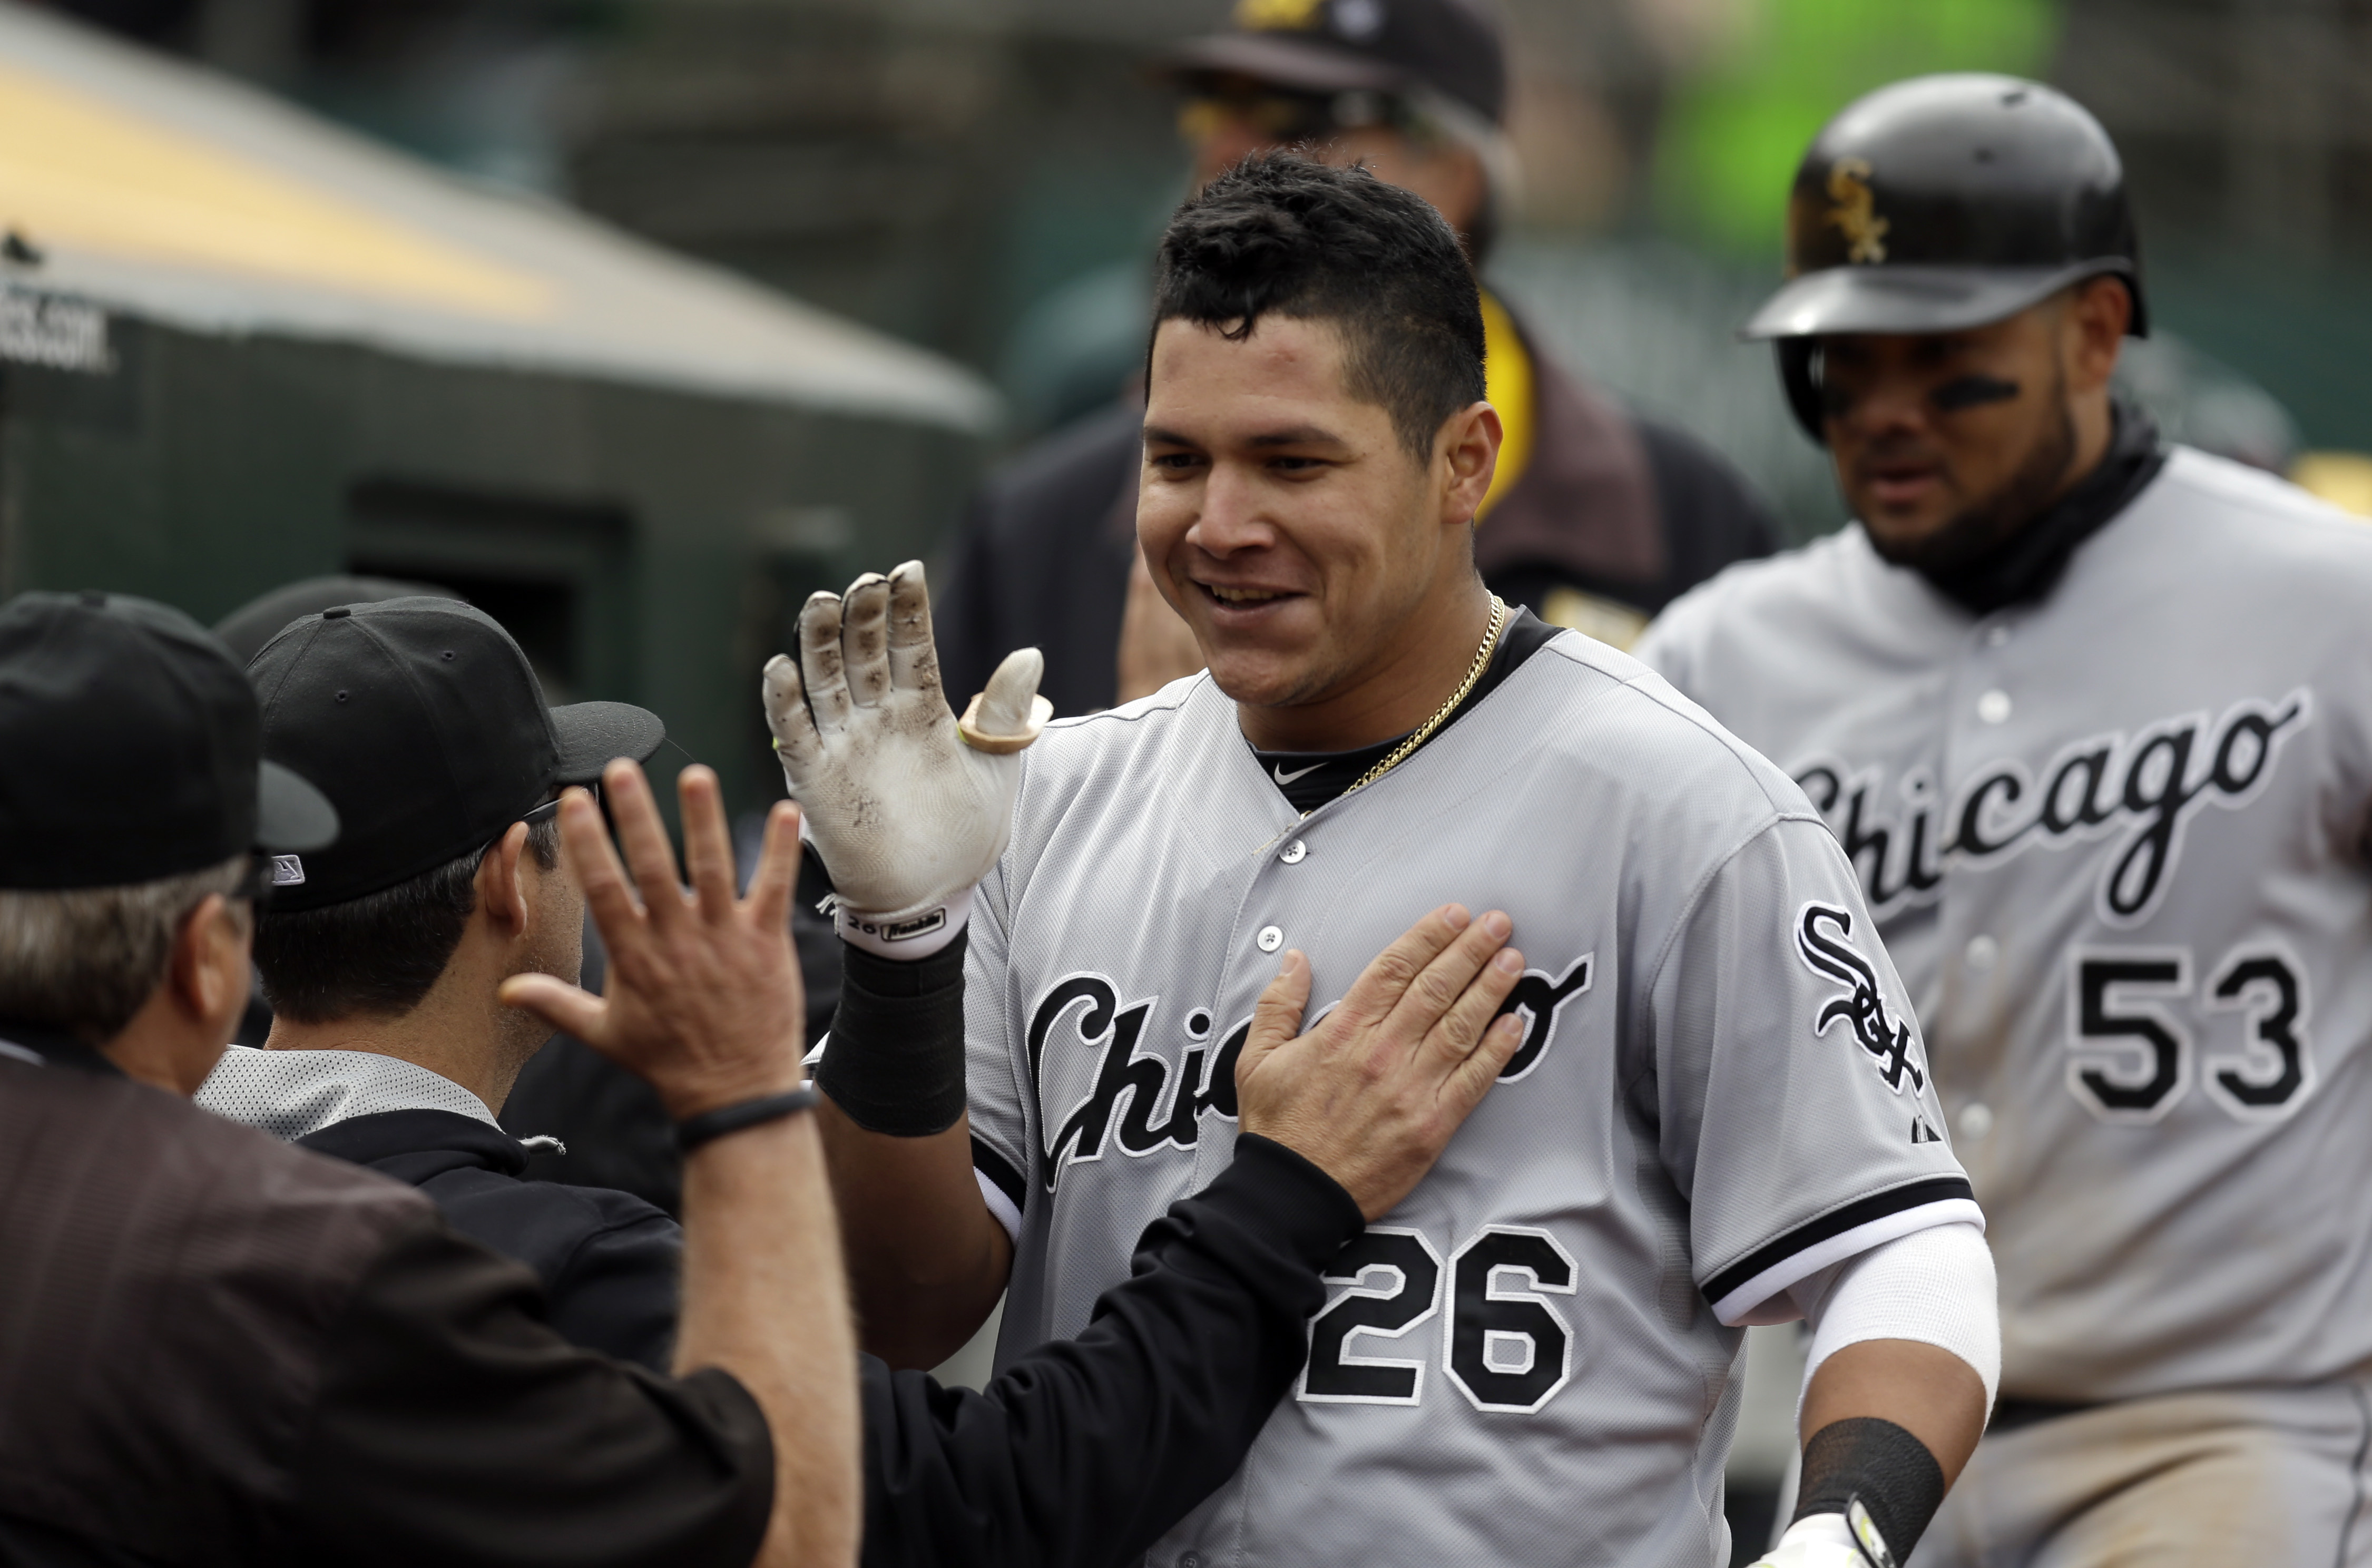 Chicago White Sox's Avisail Garcia (26) is congratulated upon returning to the dugout after hitting a two-run home run off Oakland Athletics' Tyler Clippard in the ninth inning of a baseball game Sunday, May 17, 2015, in Oakland, Calif. White Sox's Melky